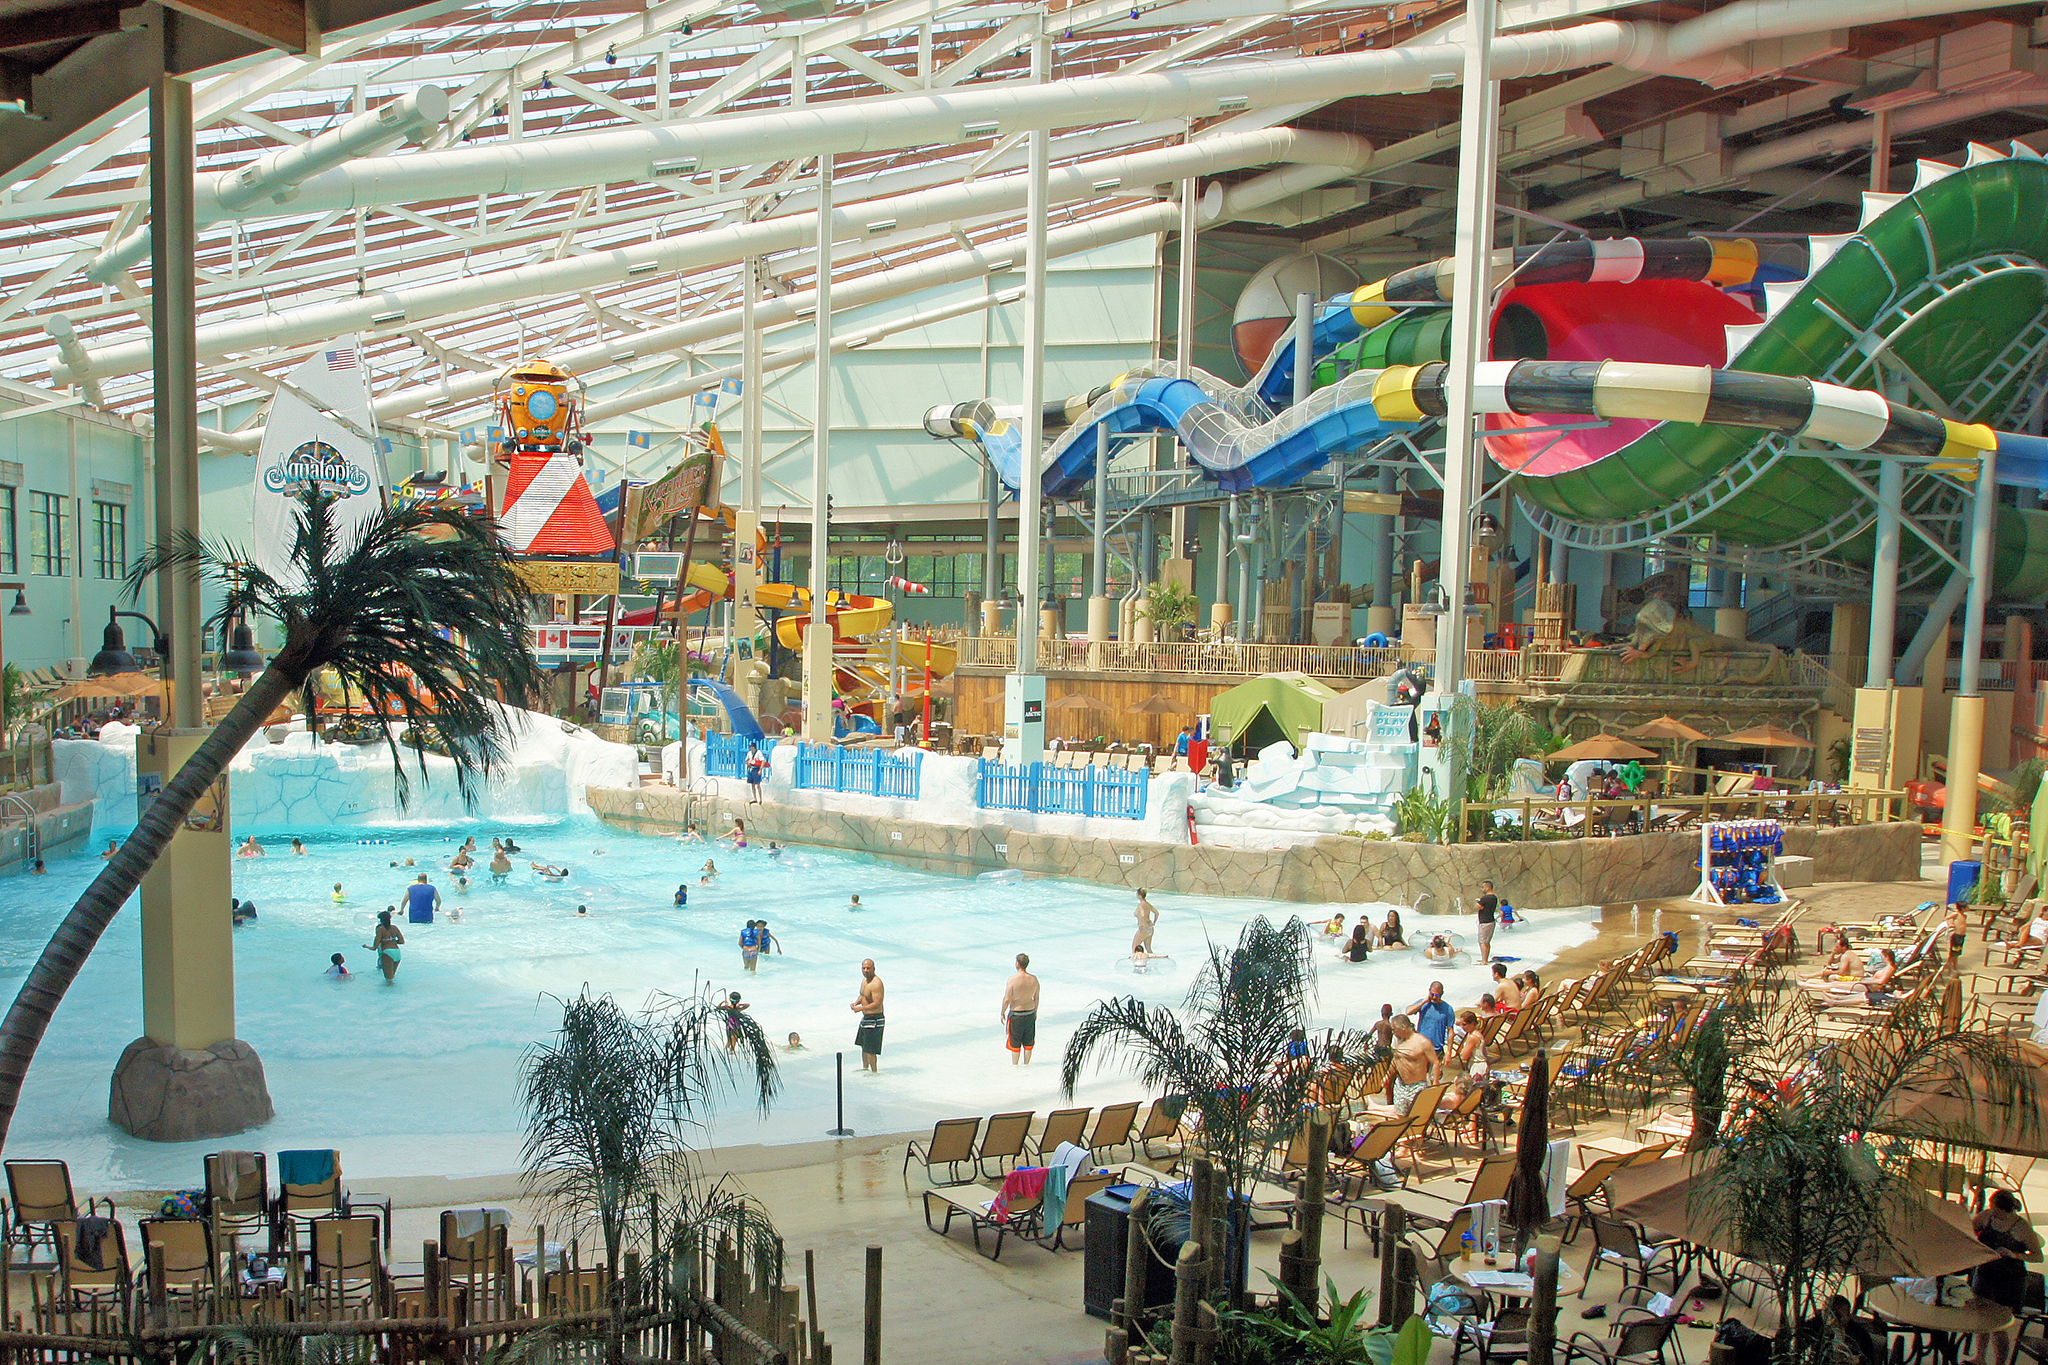 Waterpark overview at camelback lodge